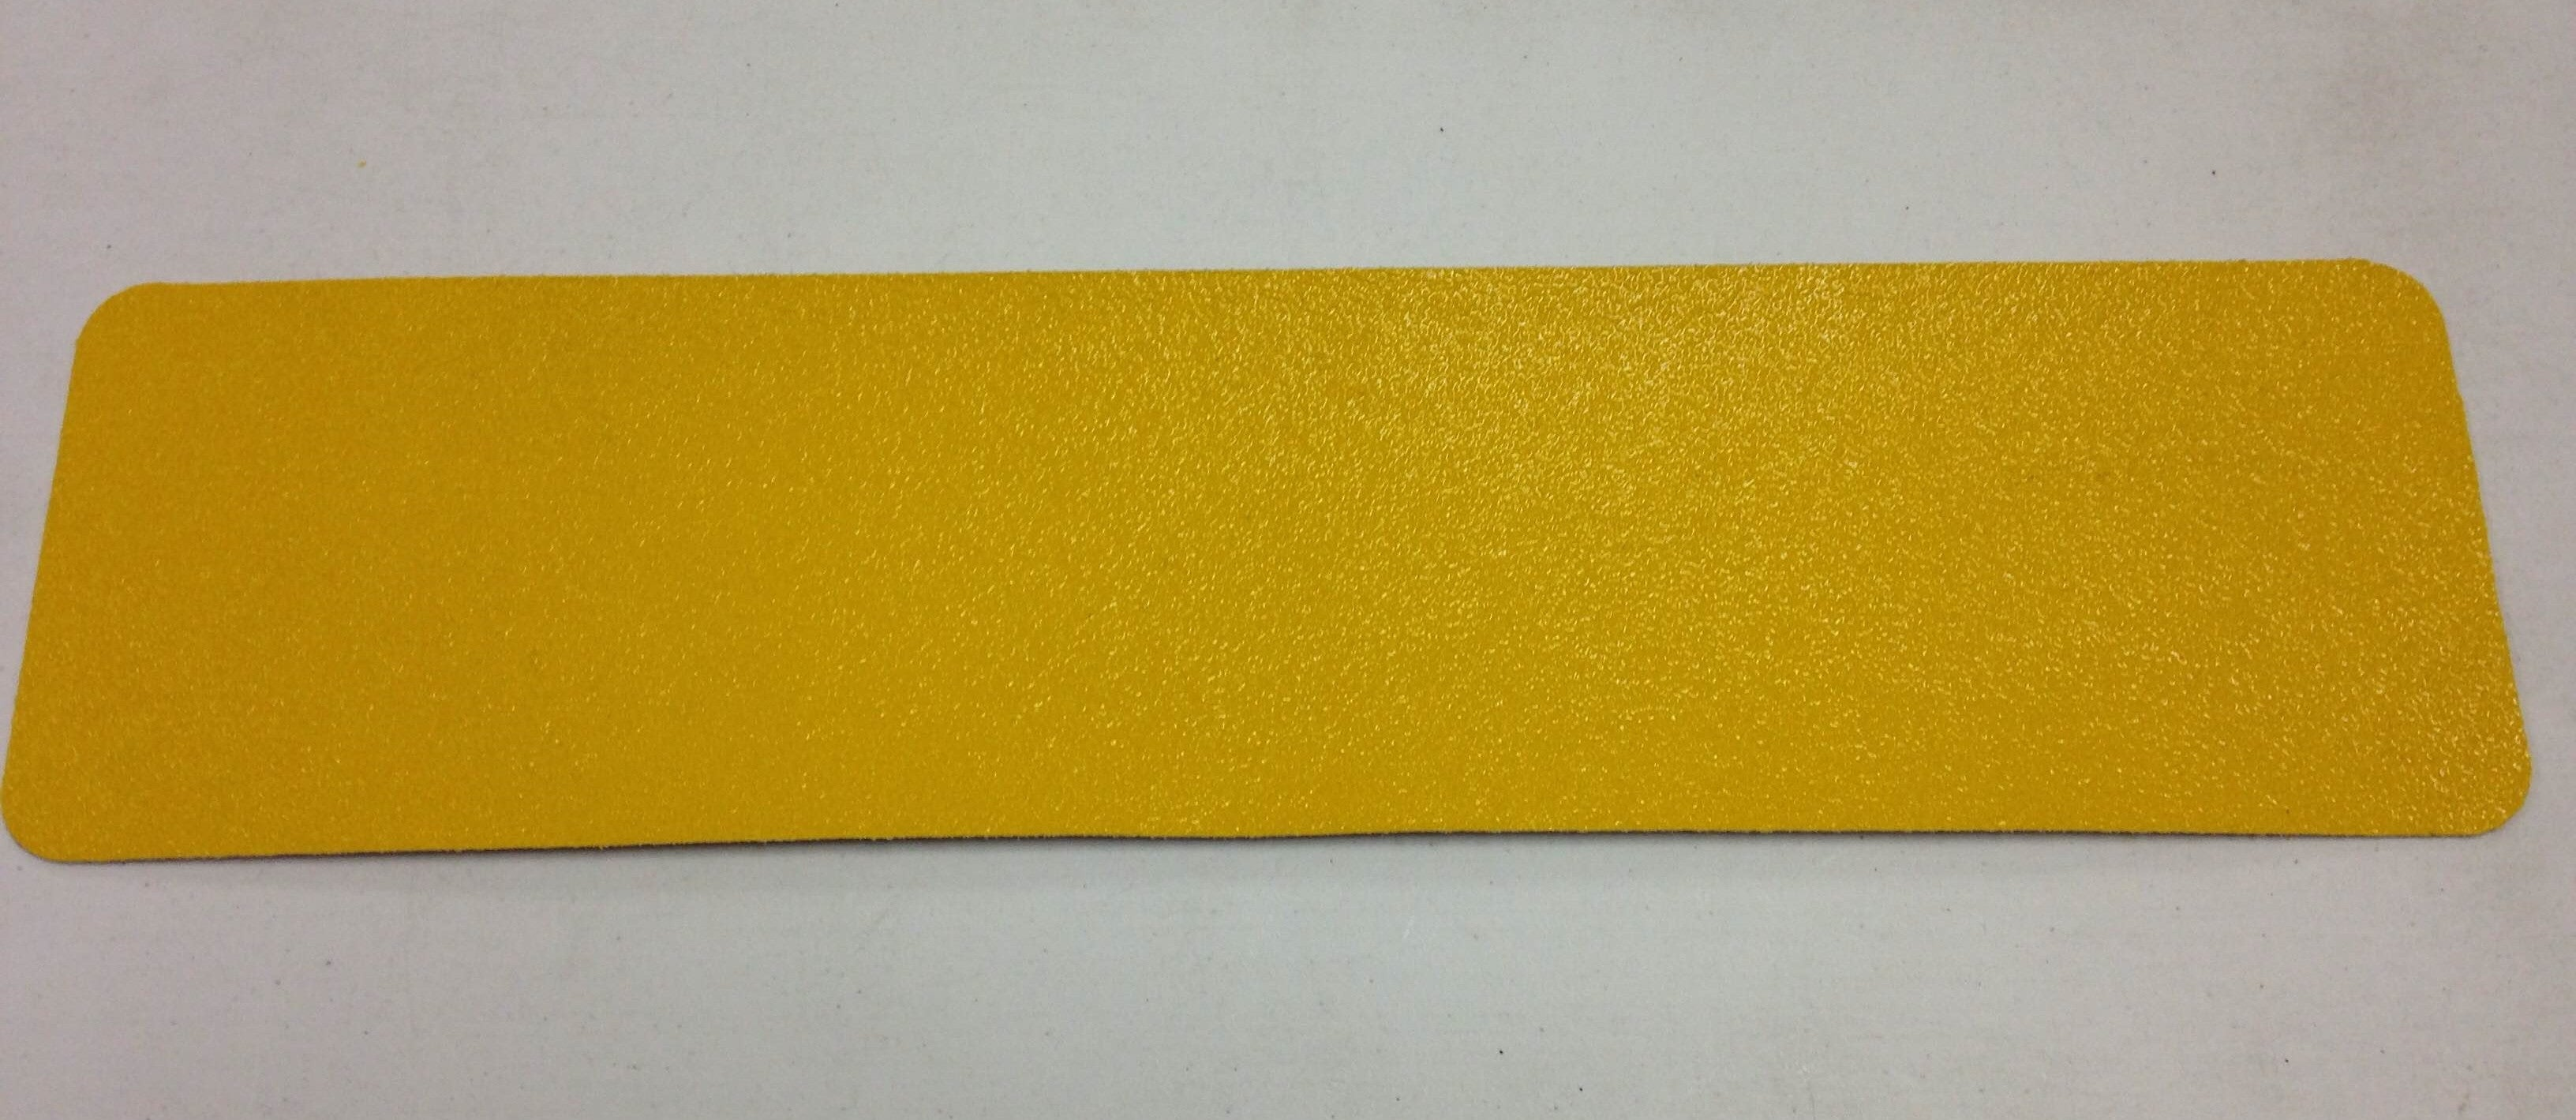 "3"" X 24"" Tread YELLOW Extreme Adhesive Coarse Abrasive Tape - Case of 12"